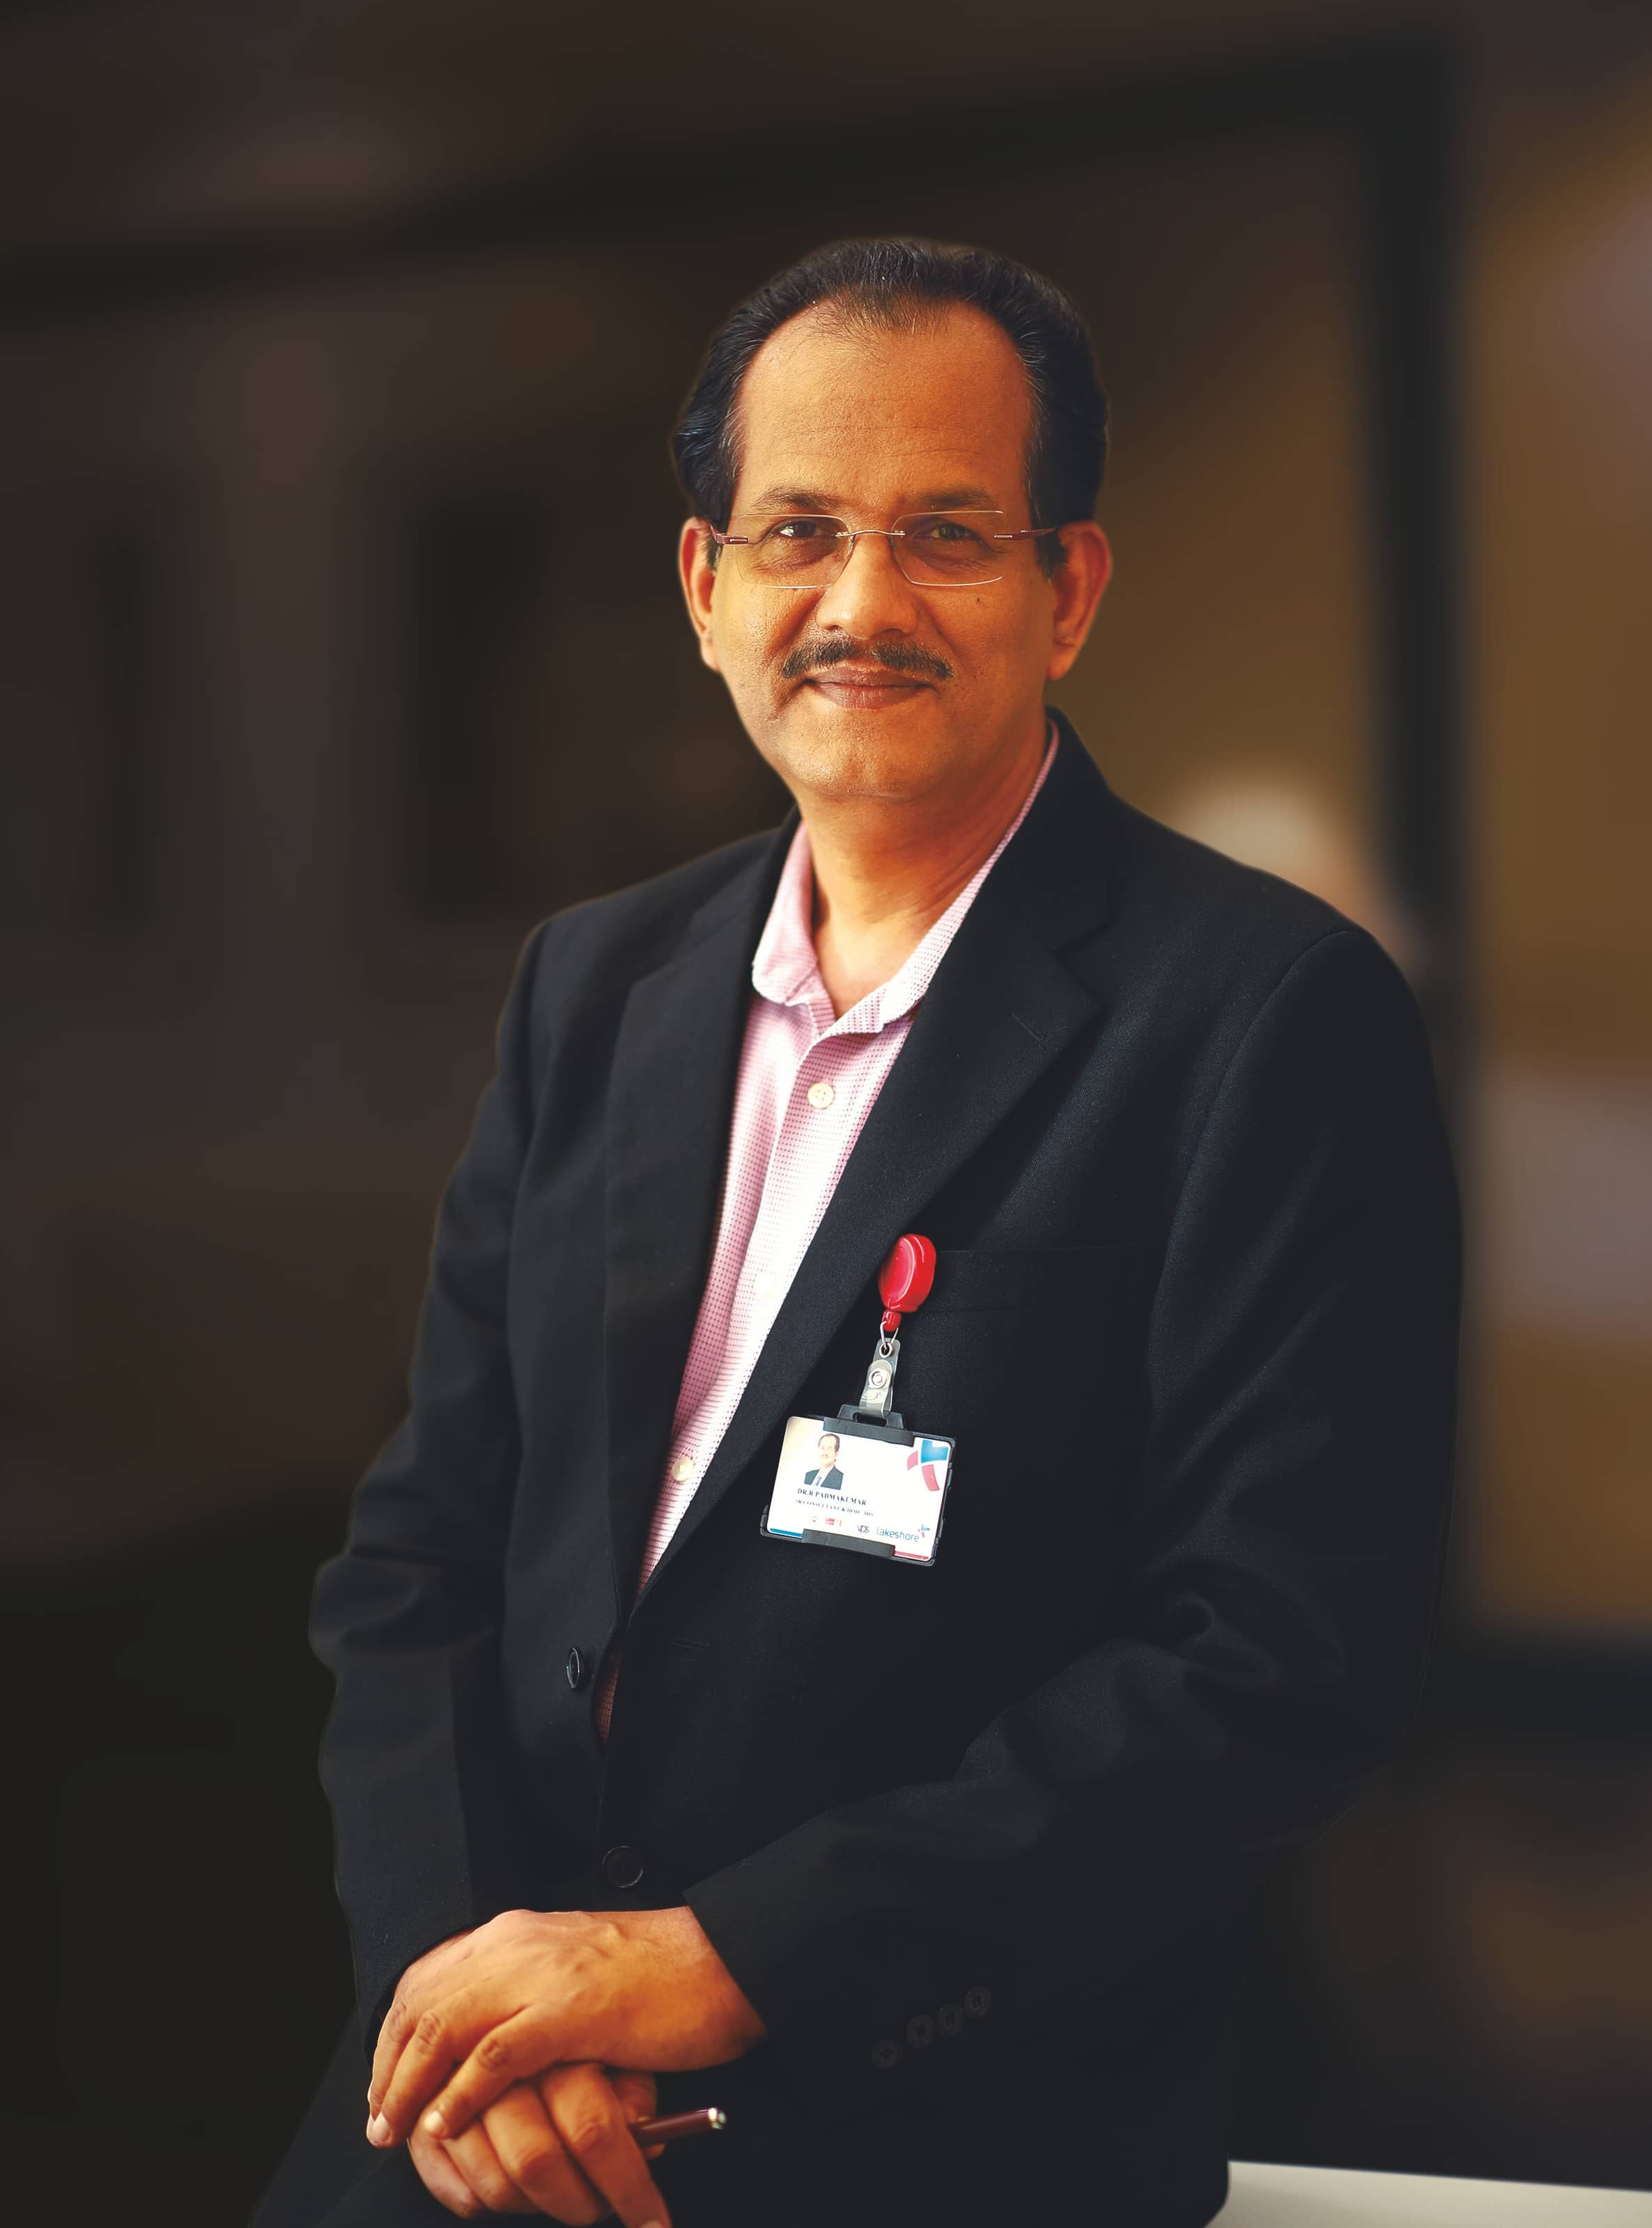 A EXTRAORDINARY LAPAROSCOPIC SURGEON WITH EXCELLENCE: DR. R. PADMAKUMAR